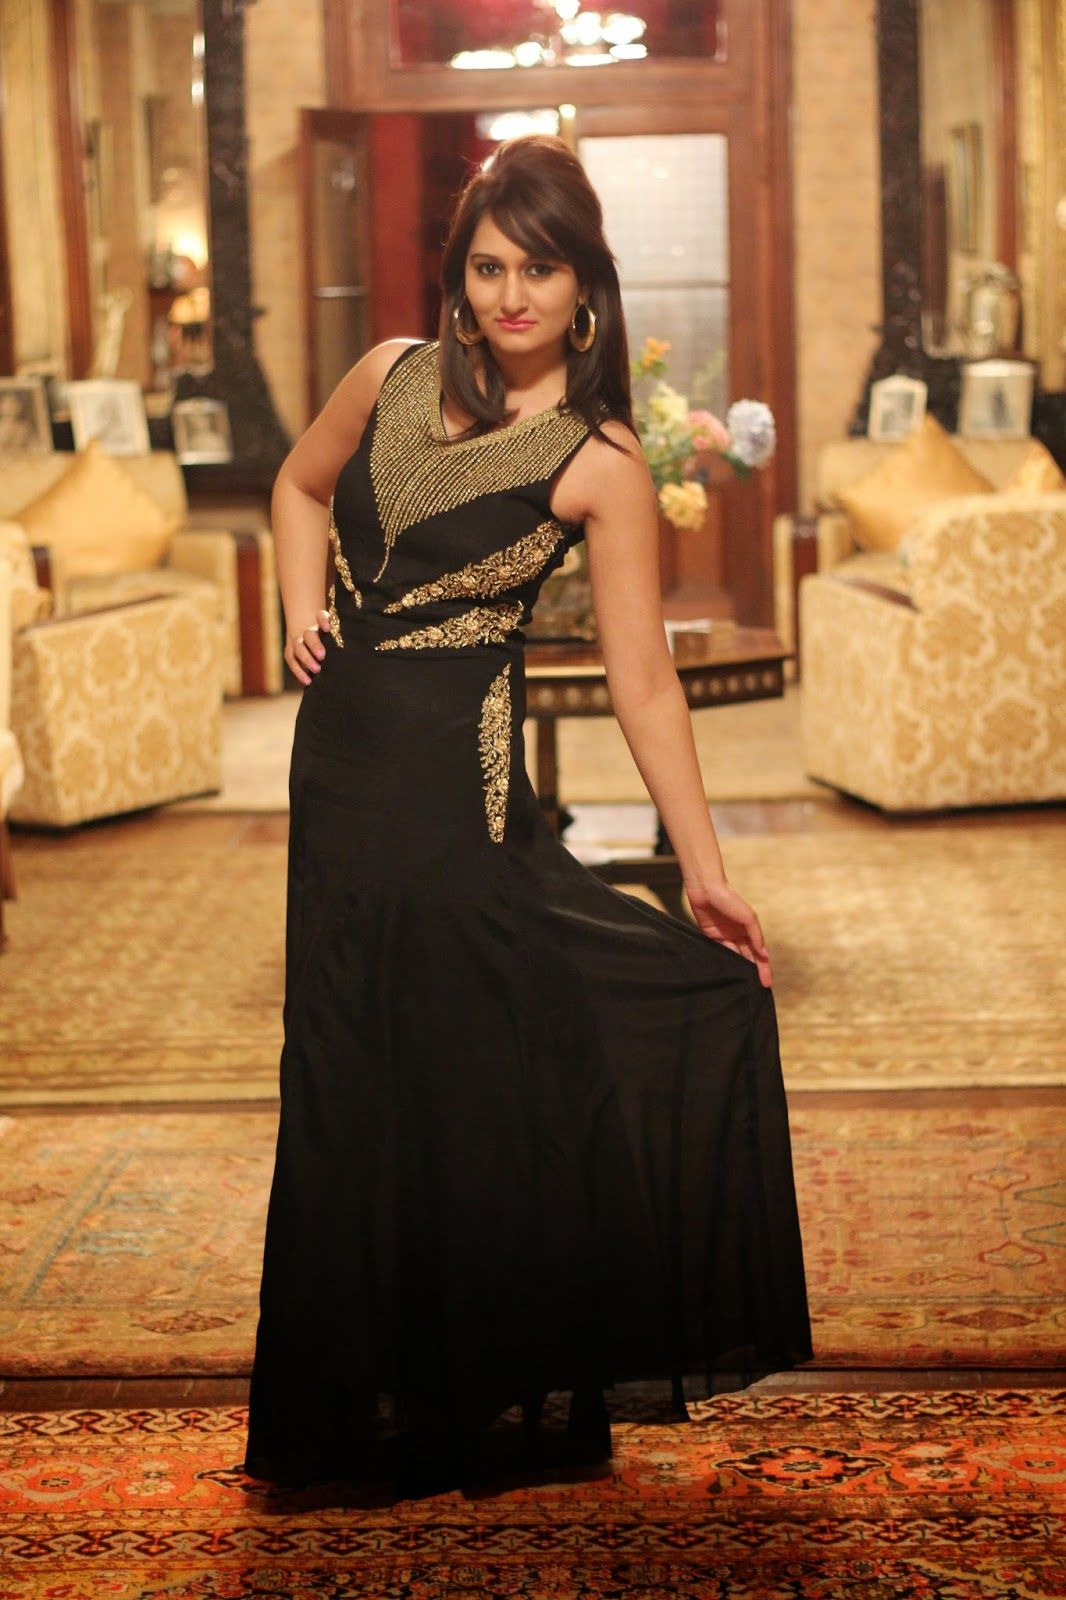 Long Black Gown With Gold Accents Gowns Of Elegance Black Gown Gowns [ 1600 x 1066 Pixel ]